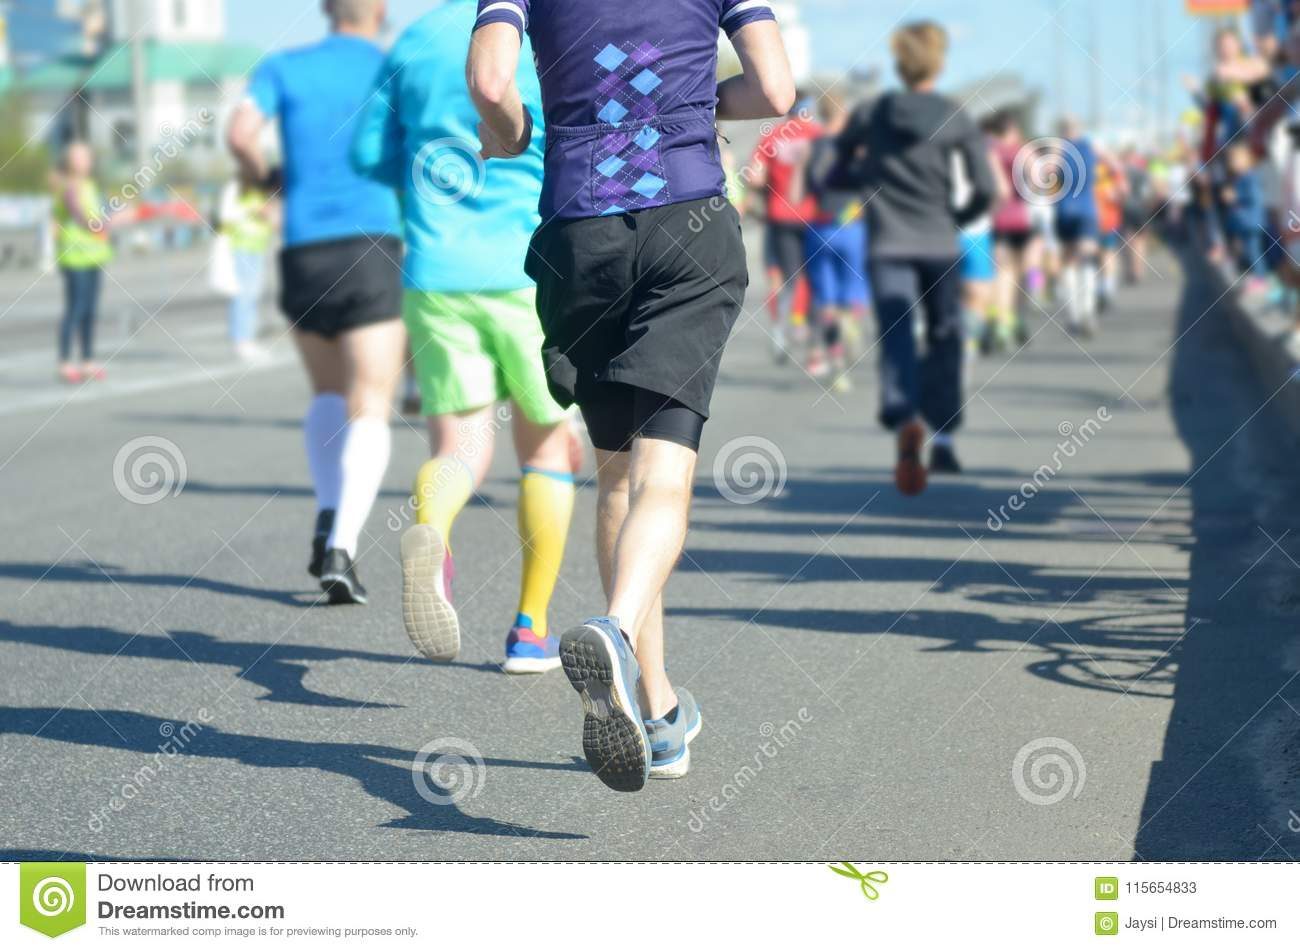 2b3eb03d9bc5f Marathon running race, many runners feet on road racing, sport competition,  fitness and healthy lifestyle concept